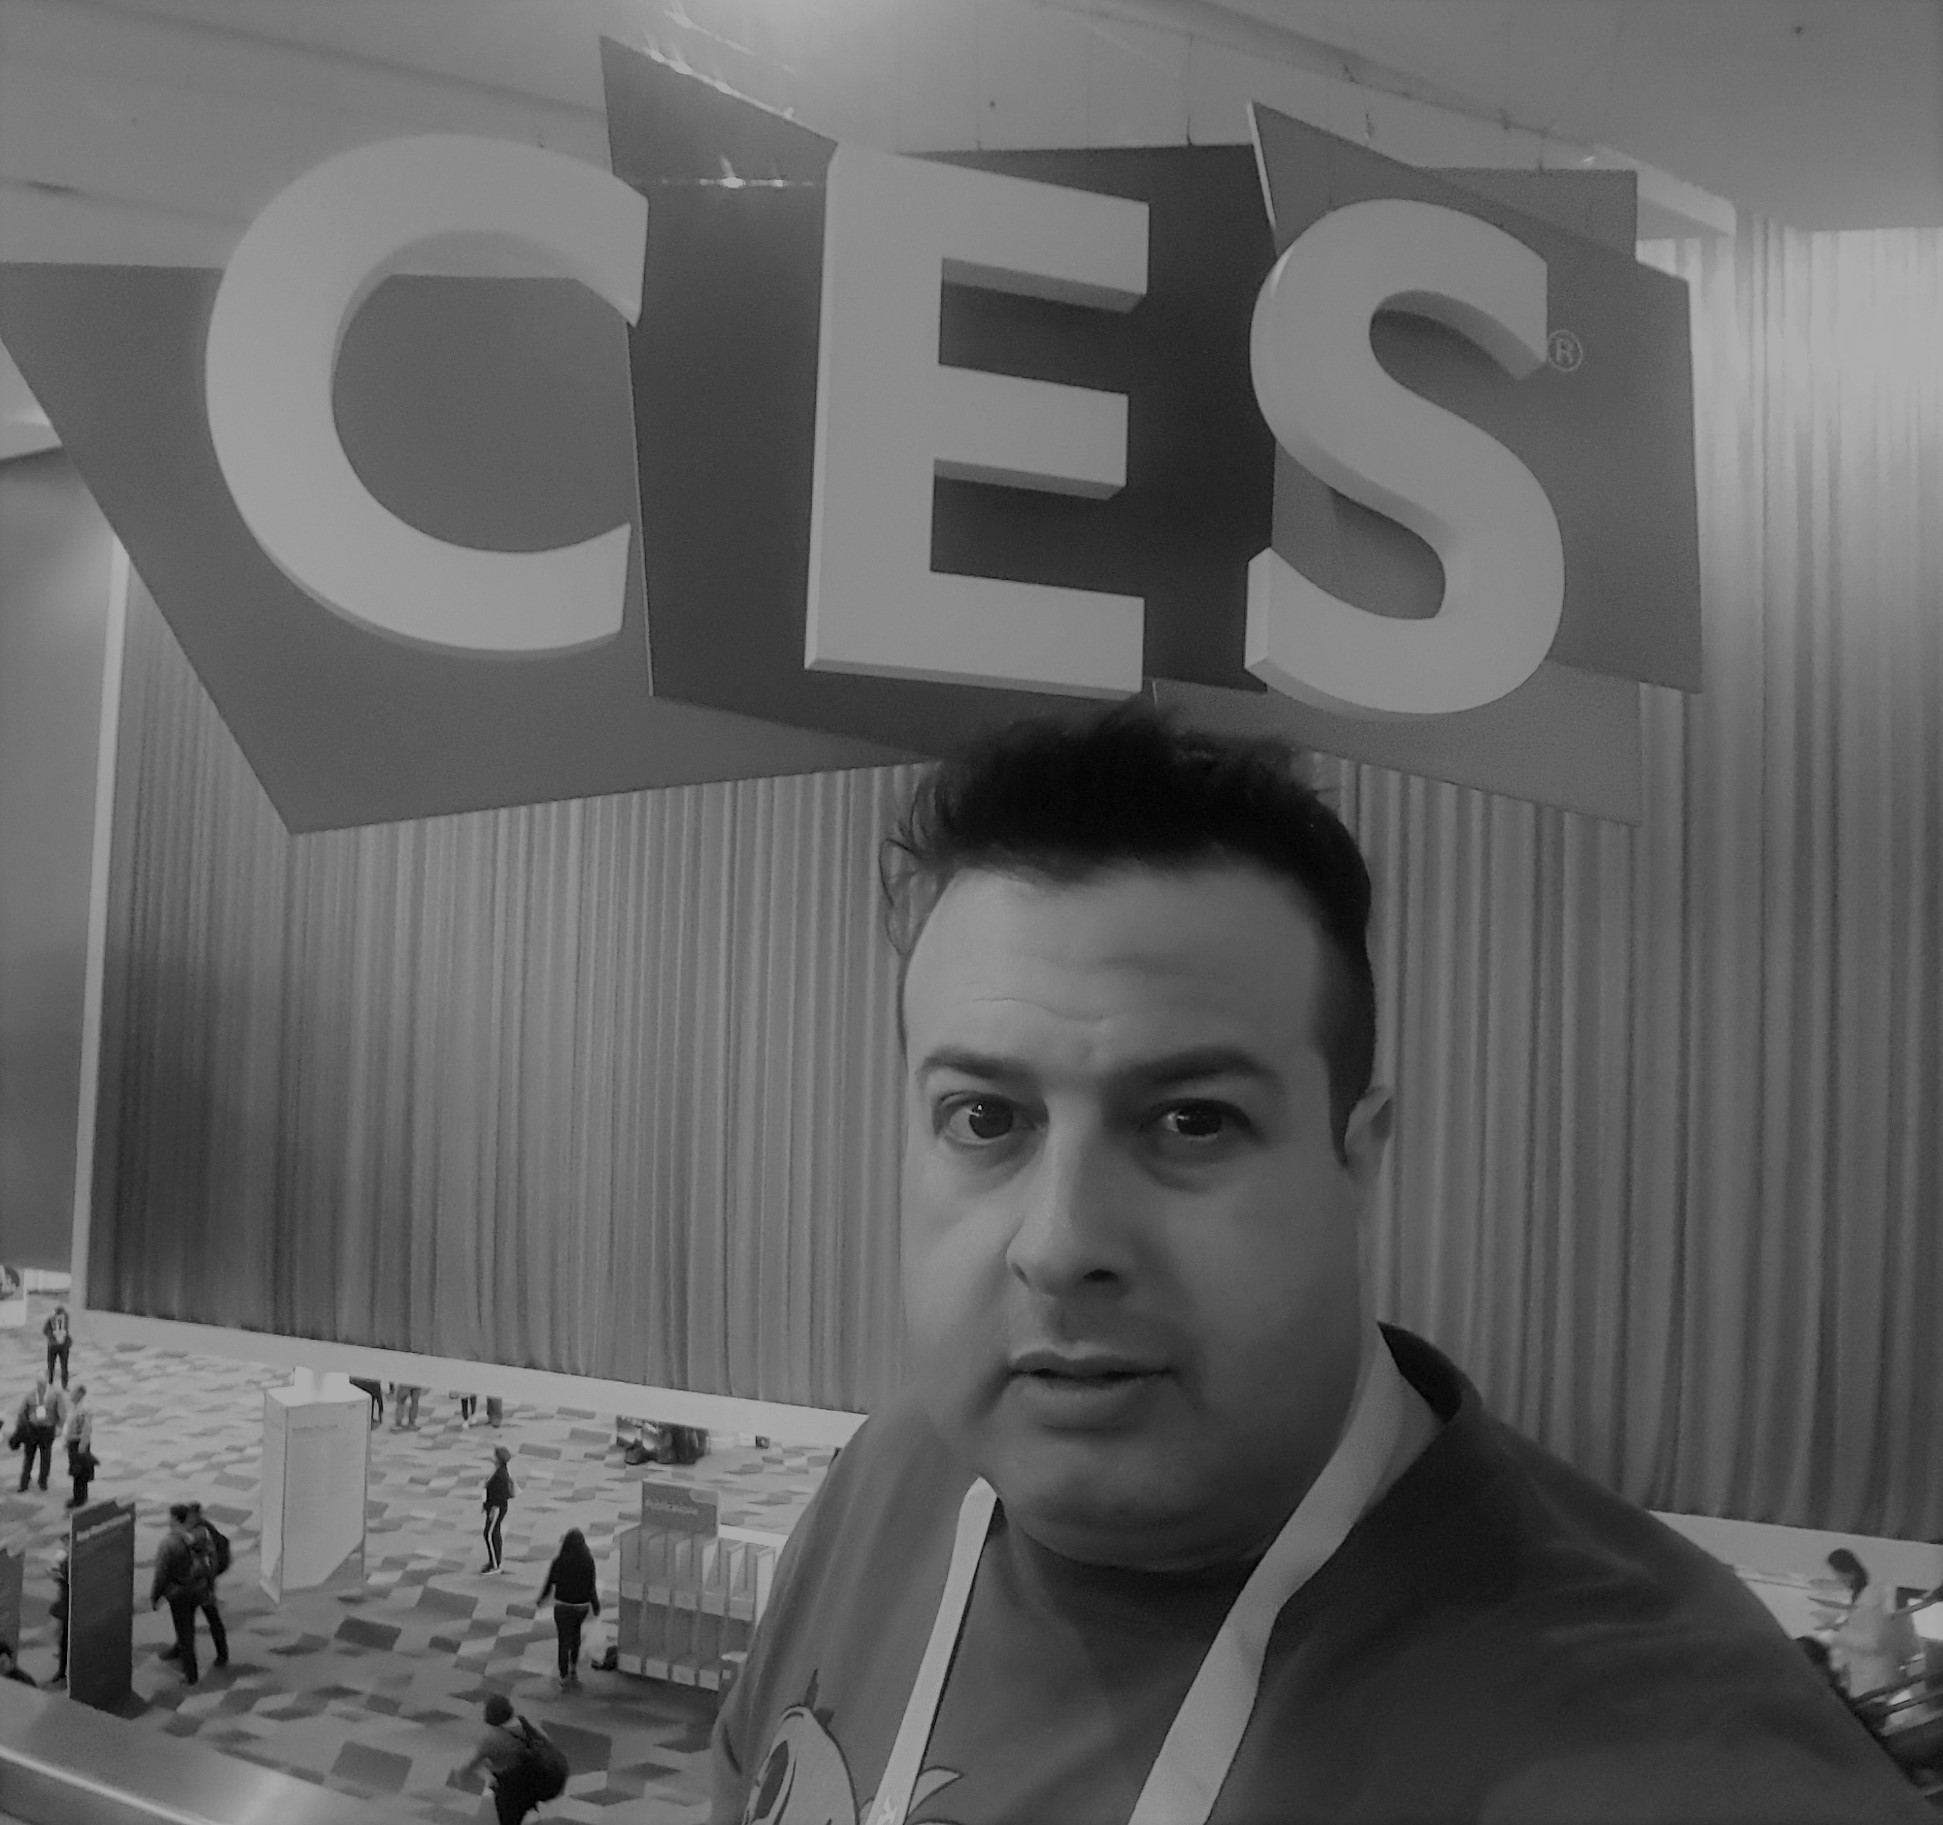 why I left CES irritated and frustrated